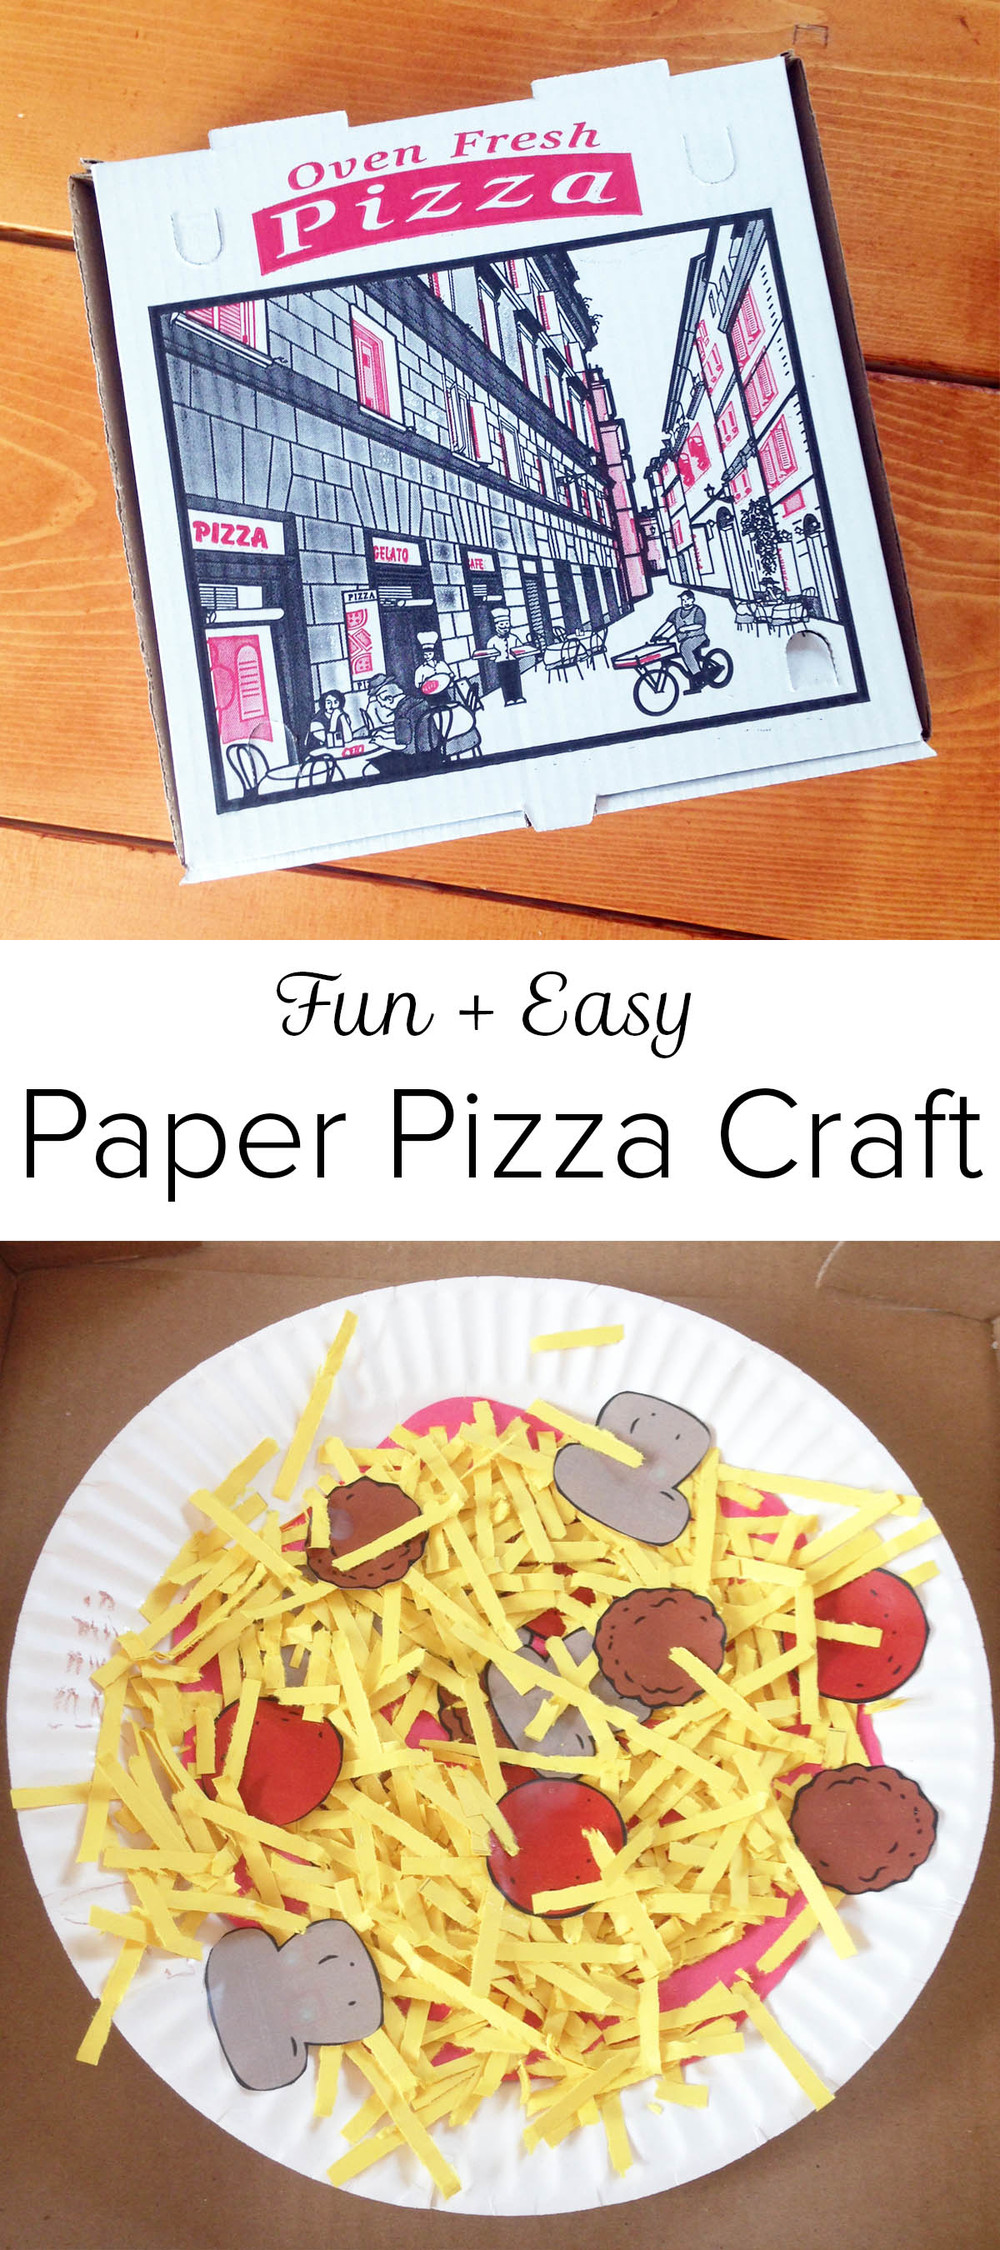 Fun + Easy Paper Pizza Craft - great for a kids' pizza party